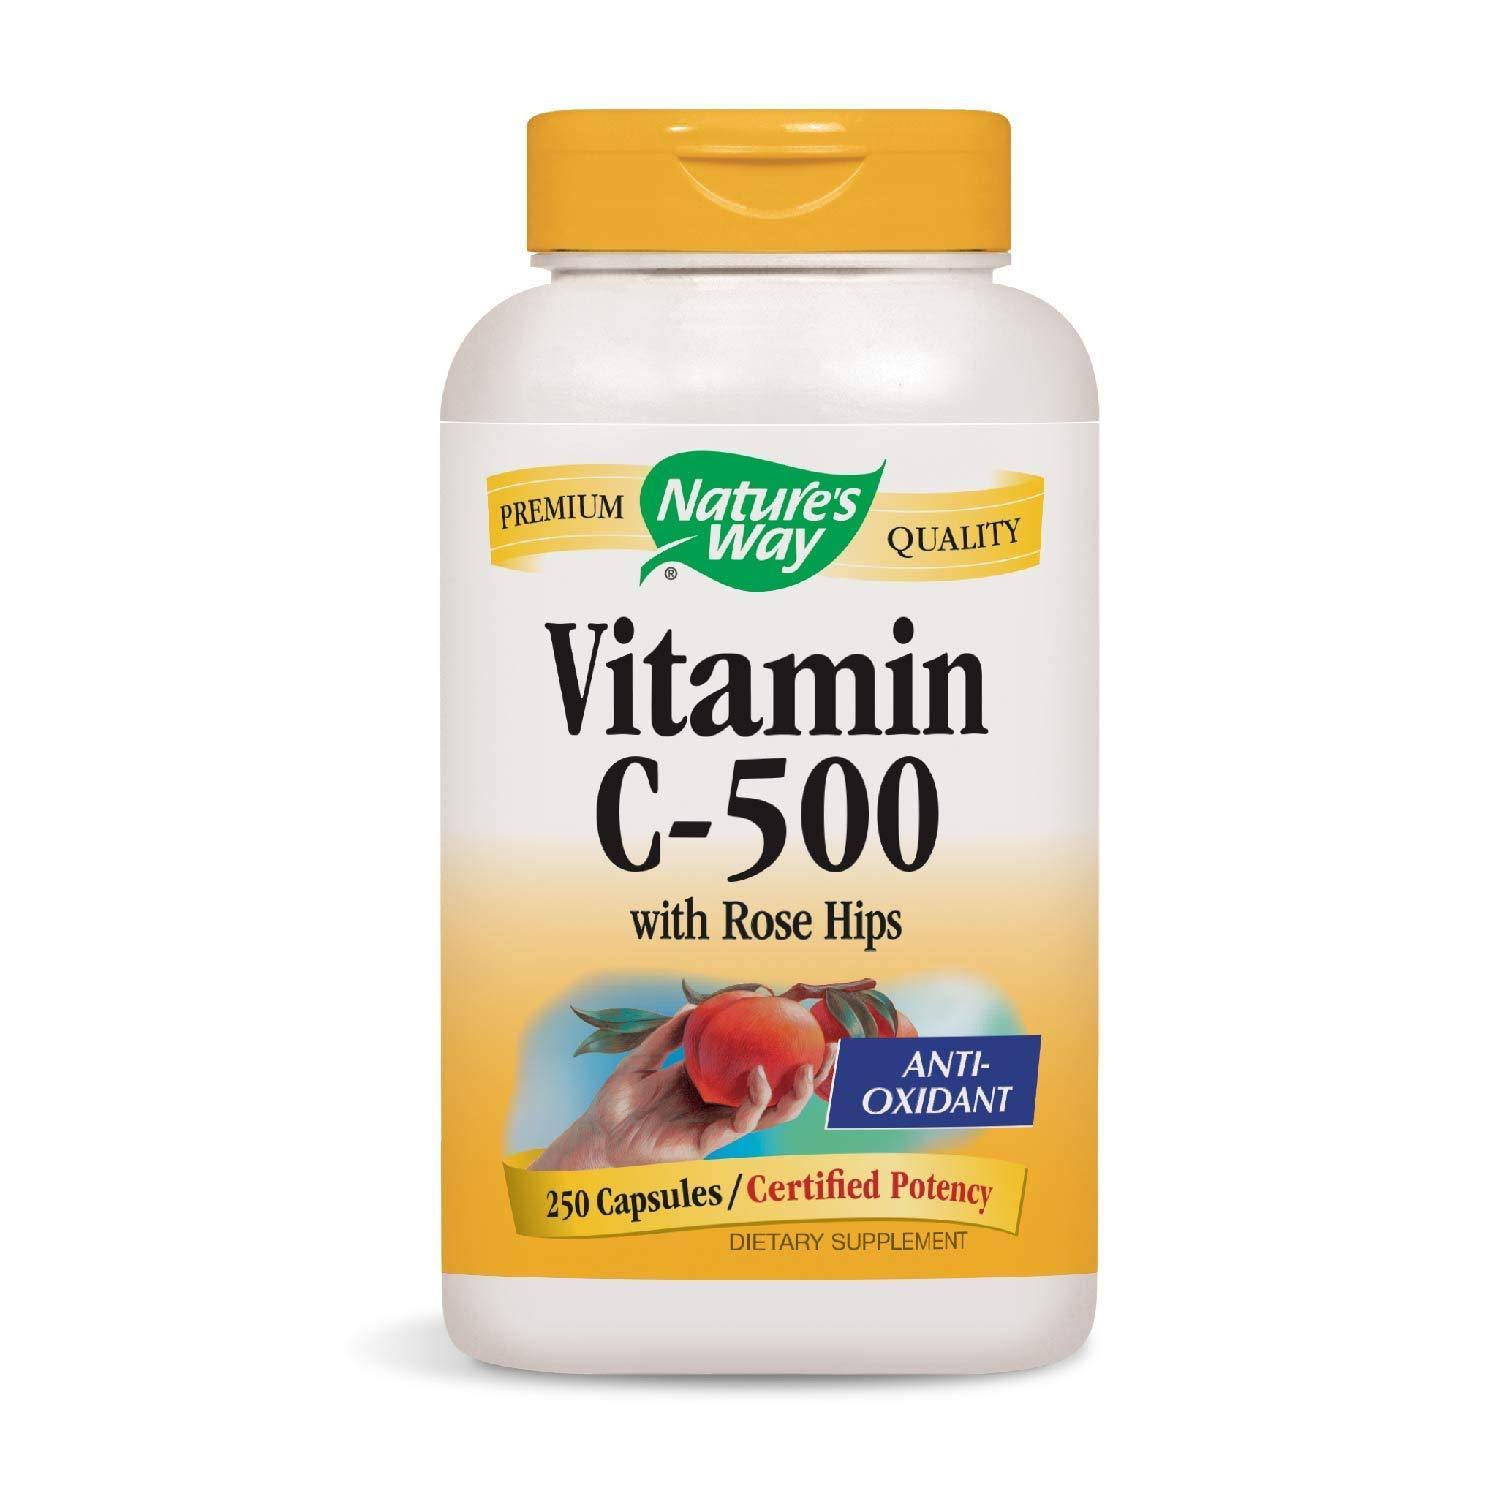 Nature's Way Vitamin C 500 with Rose Hips - 250 Capsules